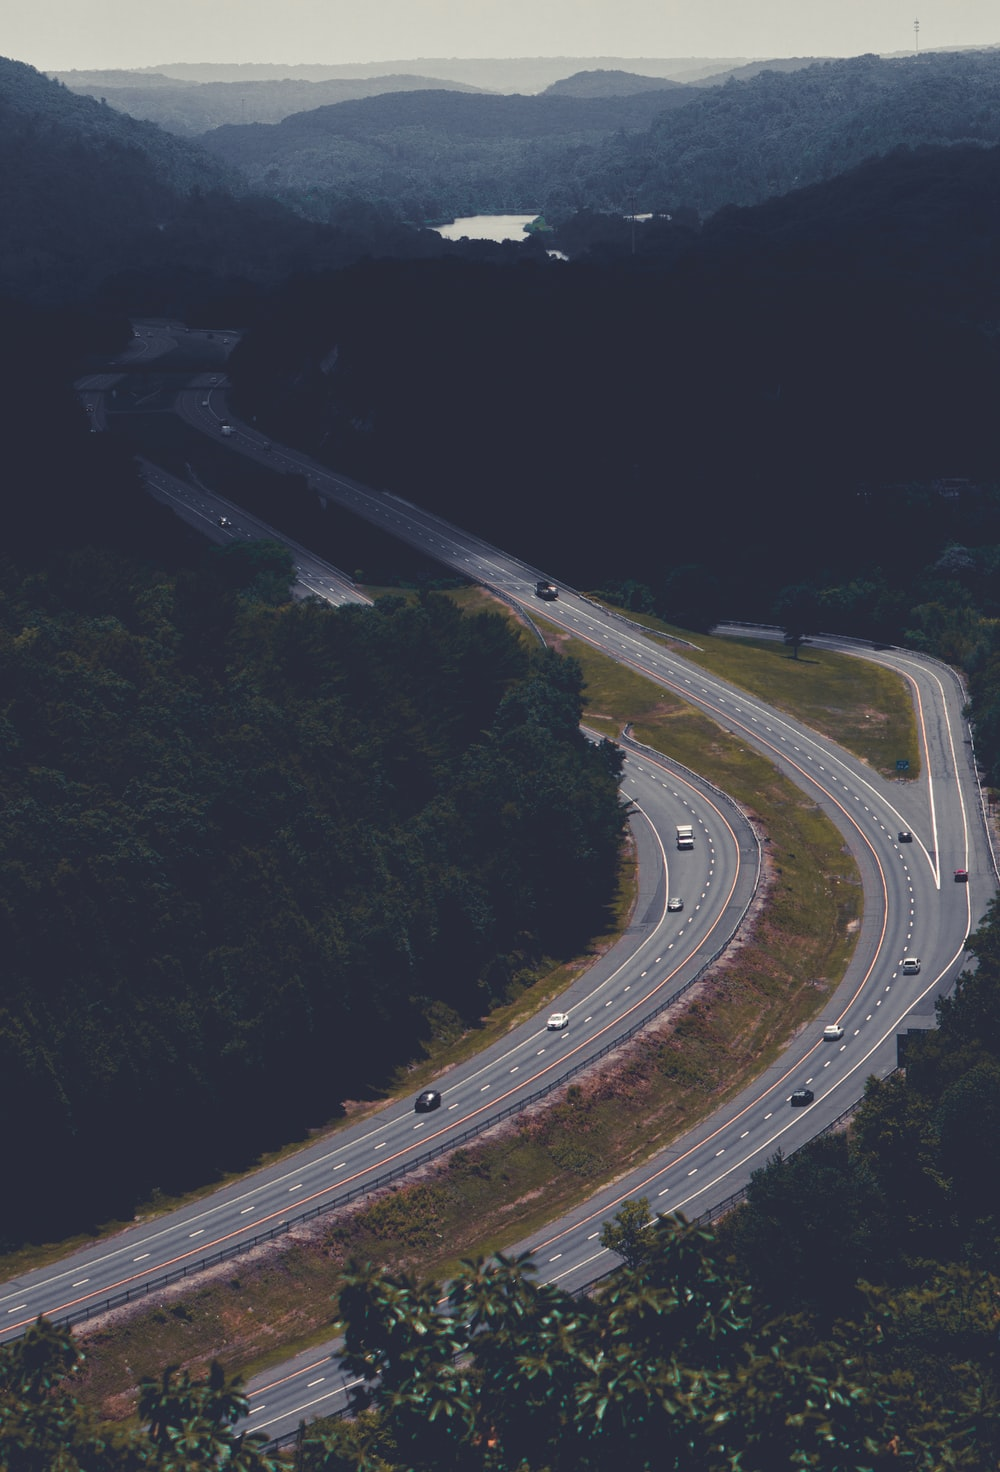 bird's eye view photography of cars